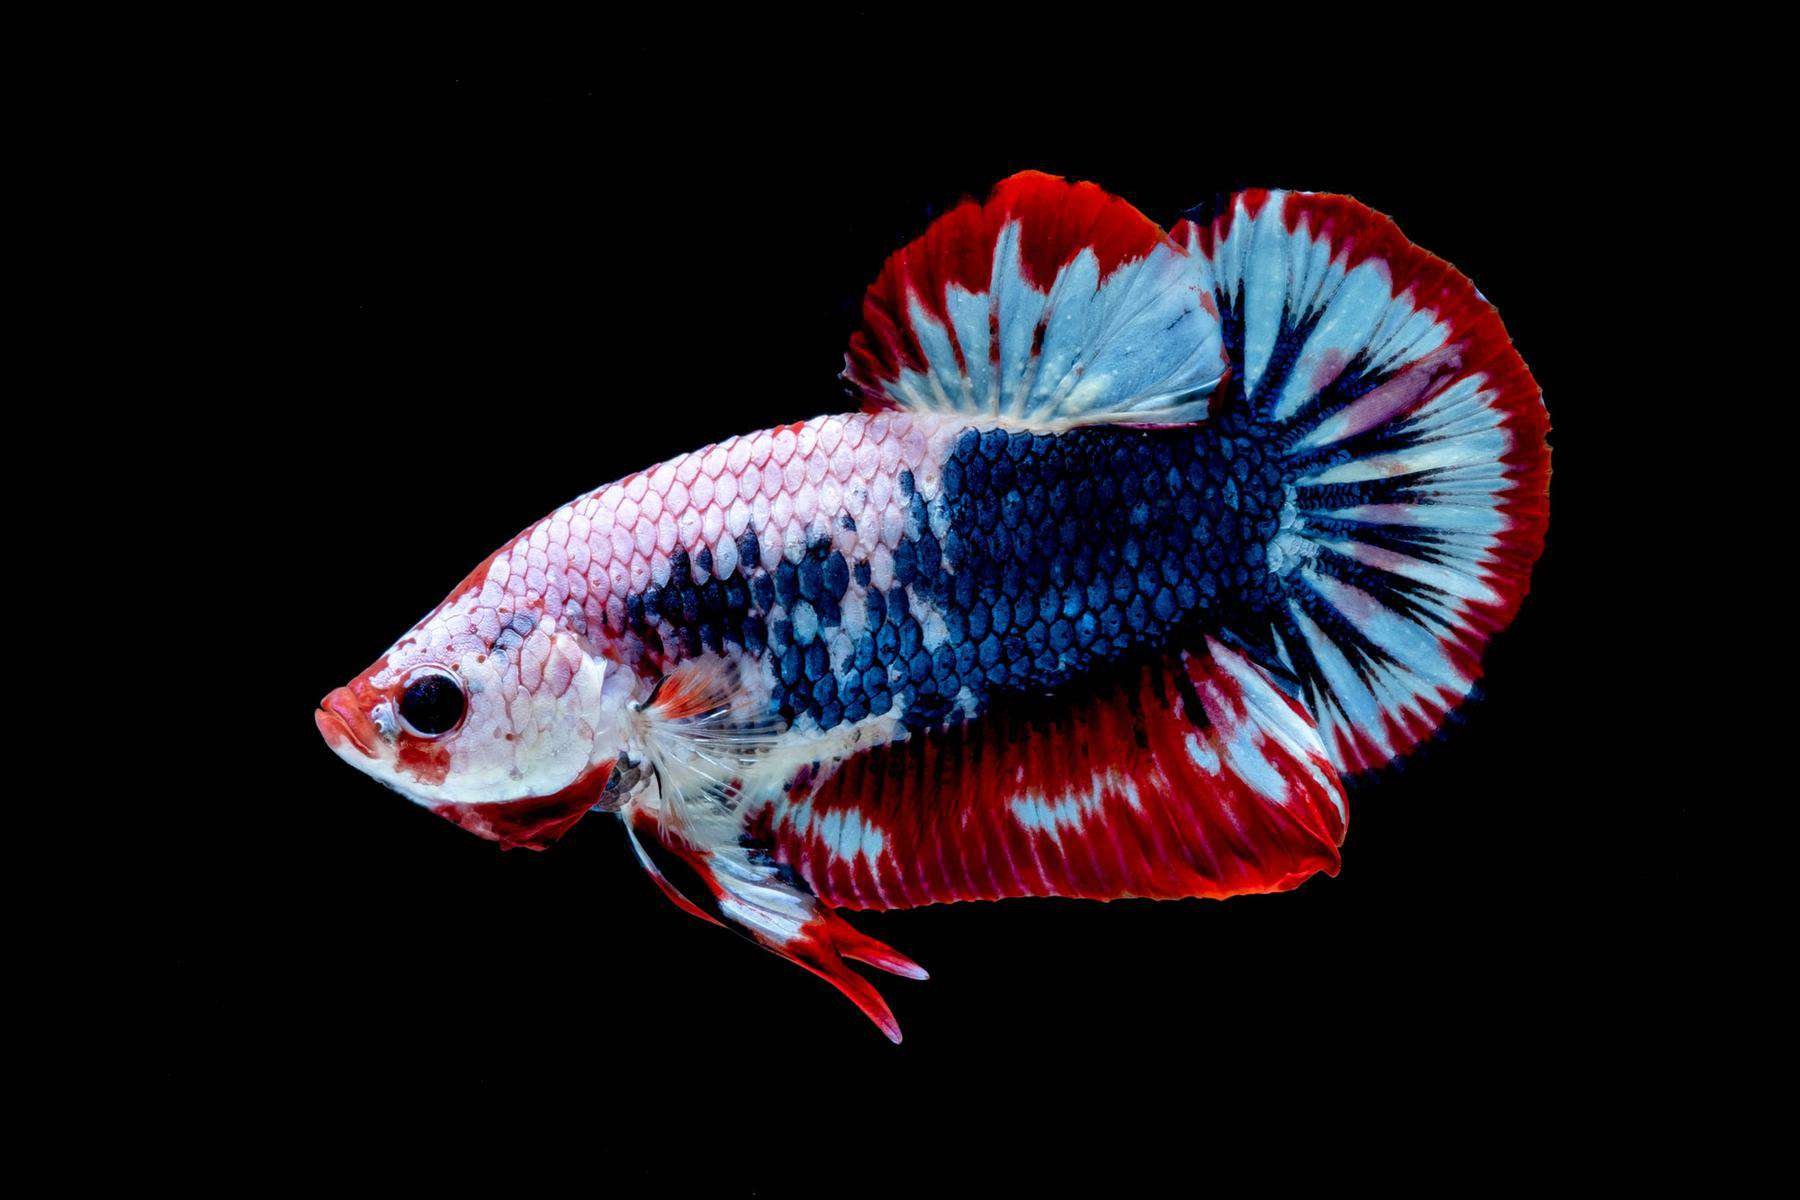 betta fish with columnaris